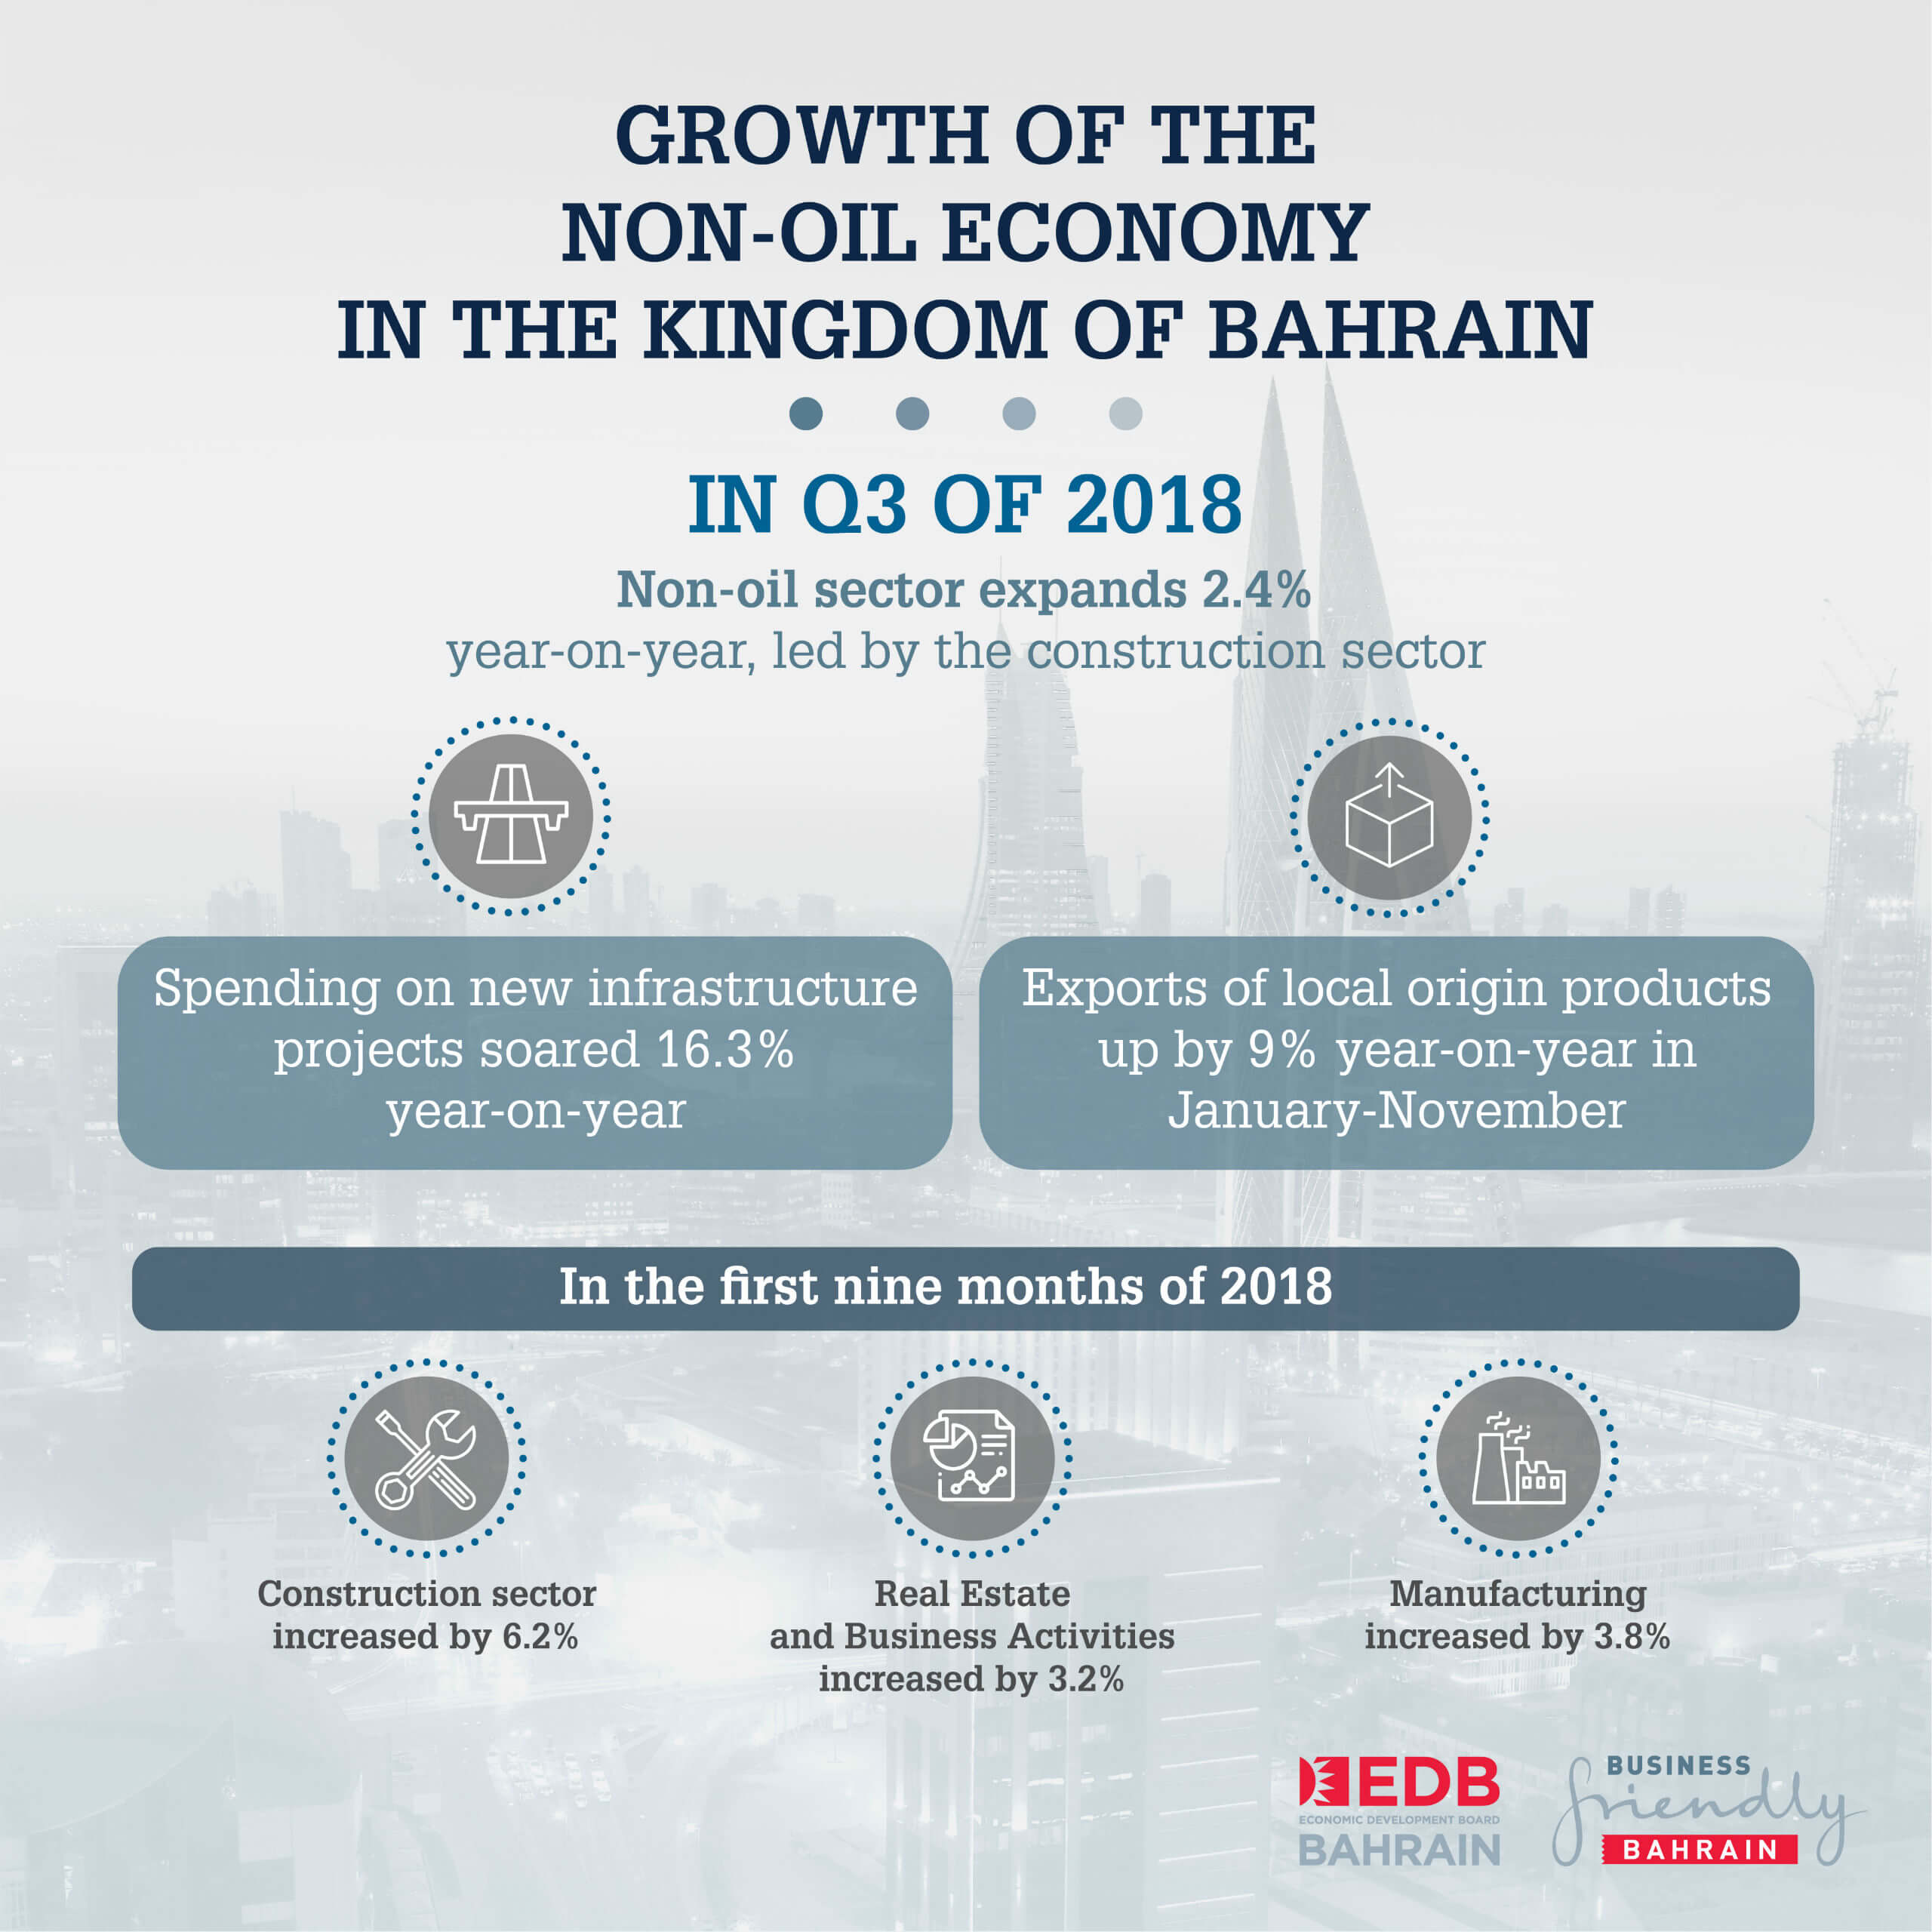 Infrastructure and construction underpin continuity in Bahrain's non-oil growth